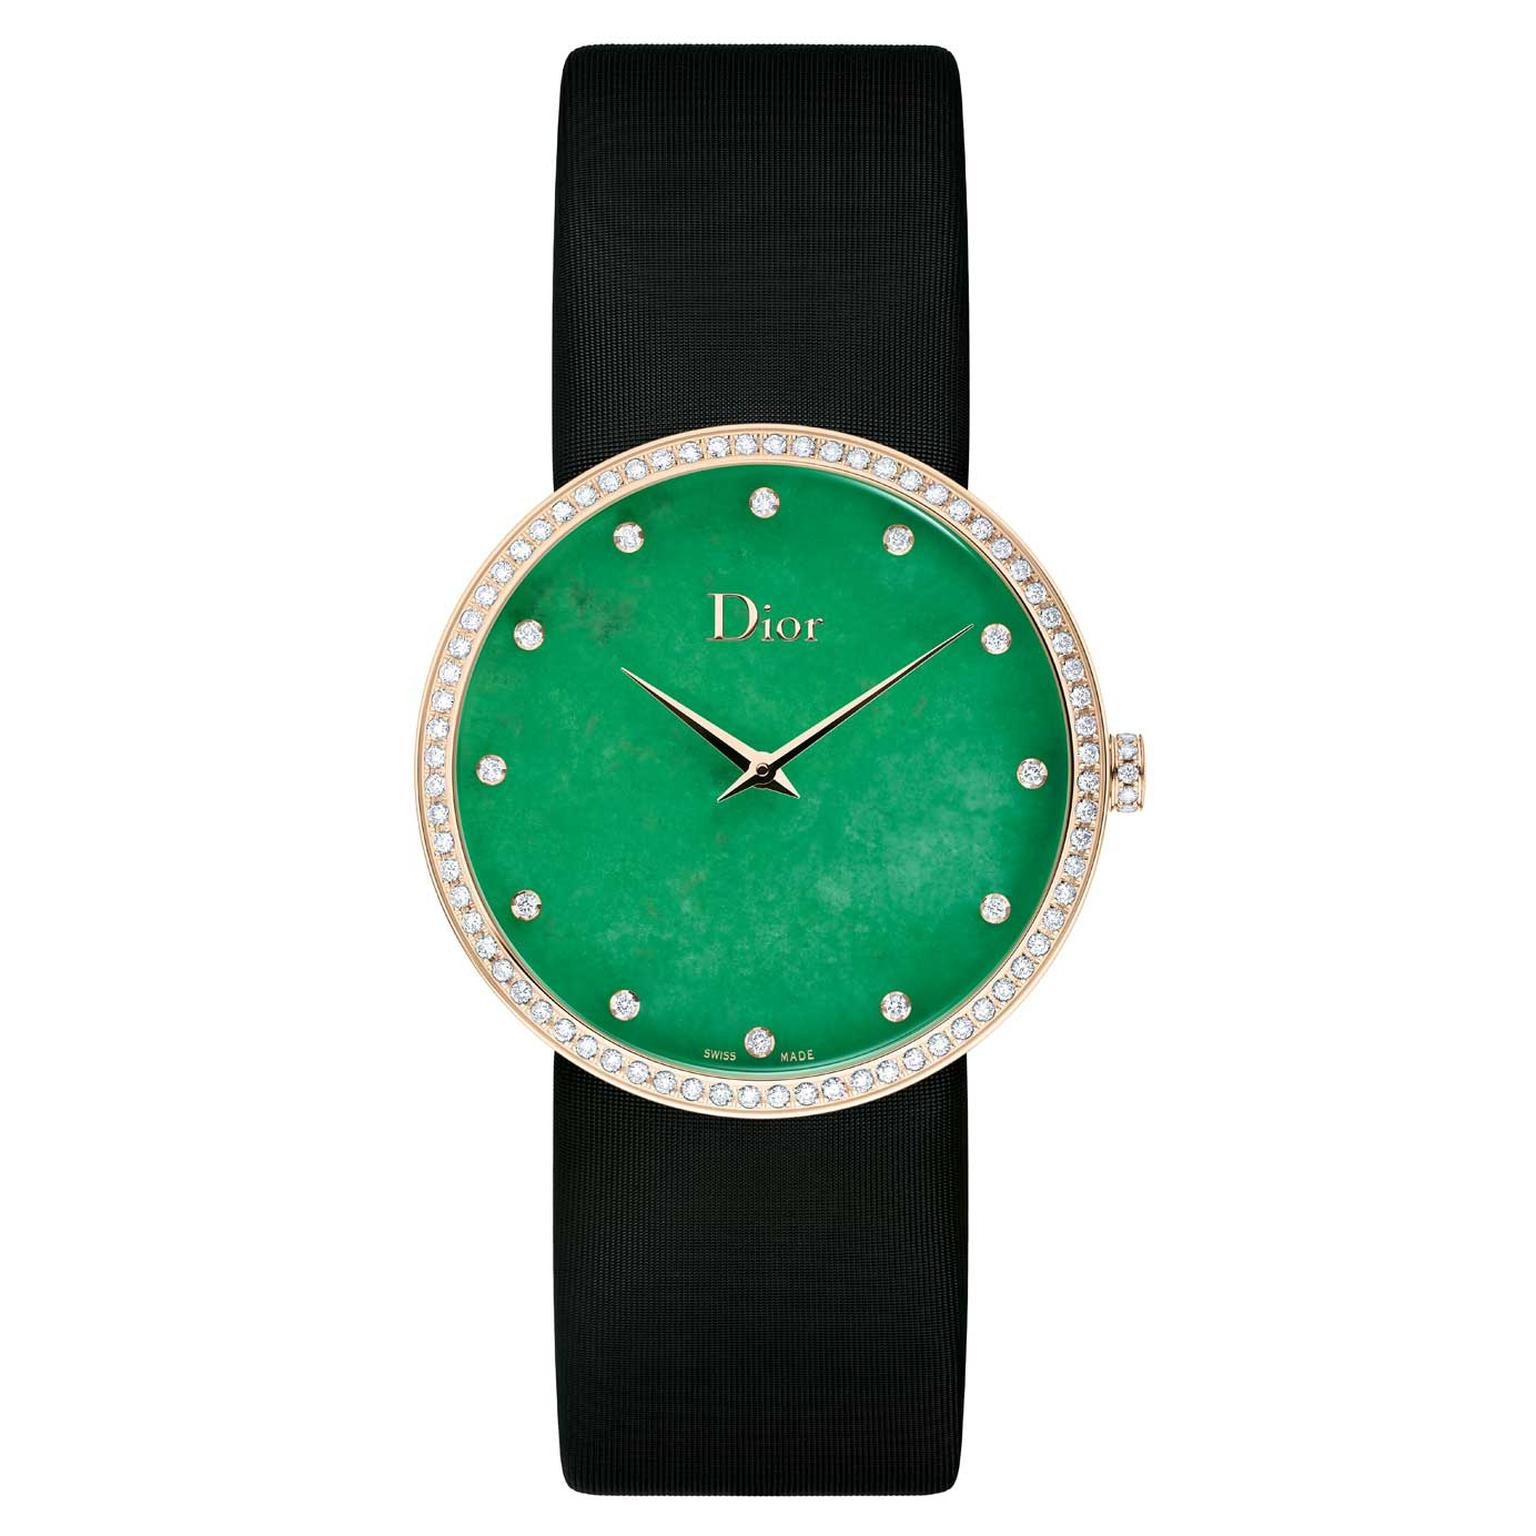 La-D-de-Dior-gold-watch-with-jade-dial